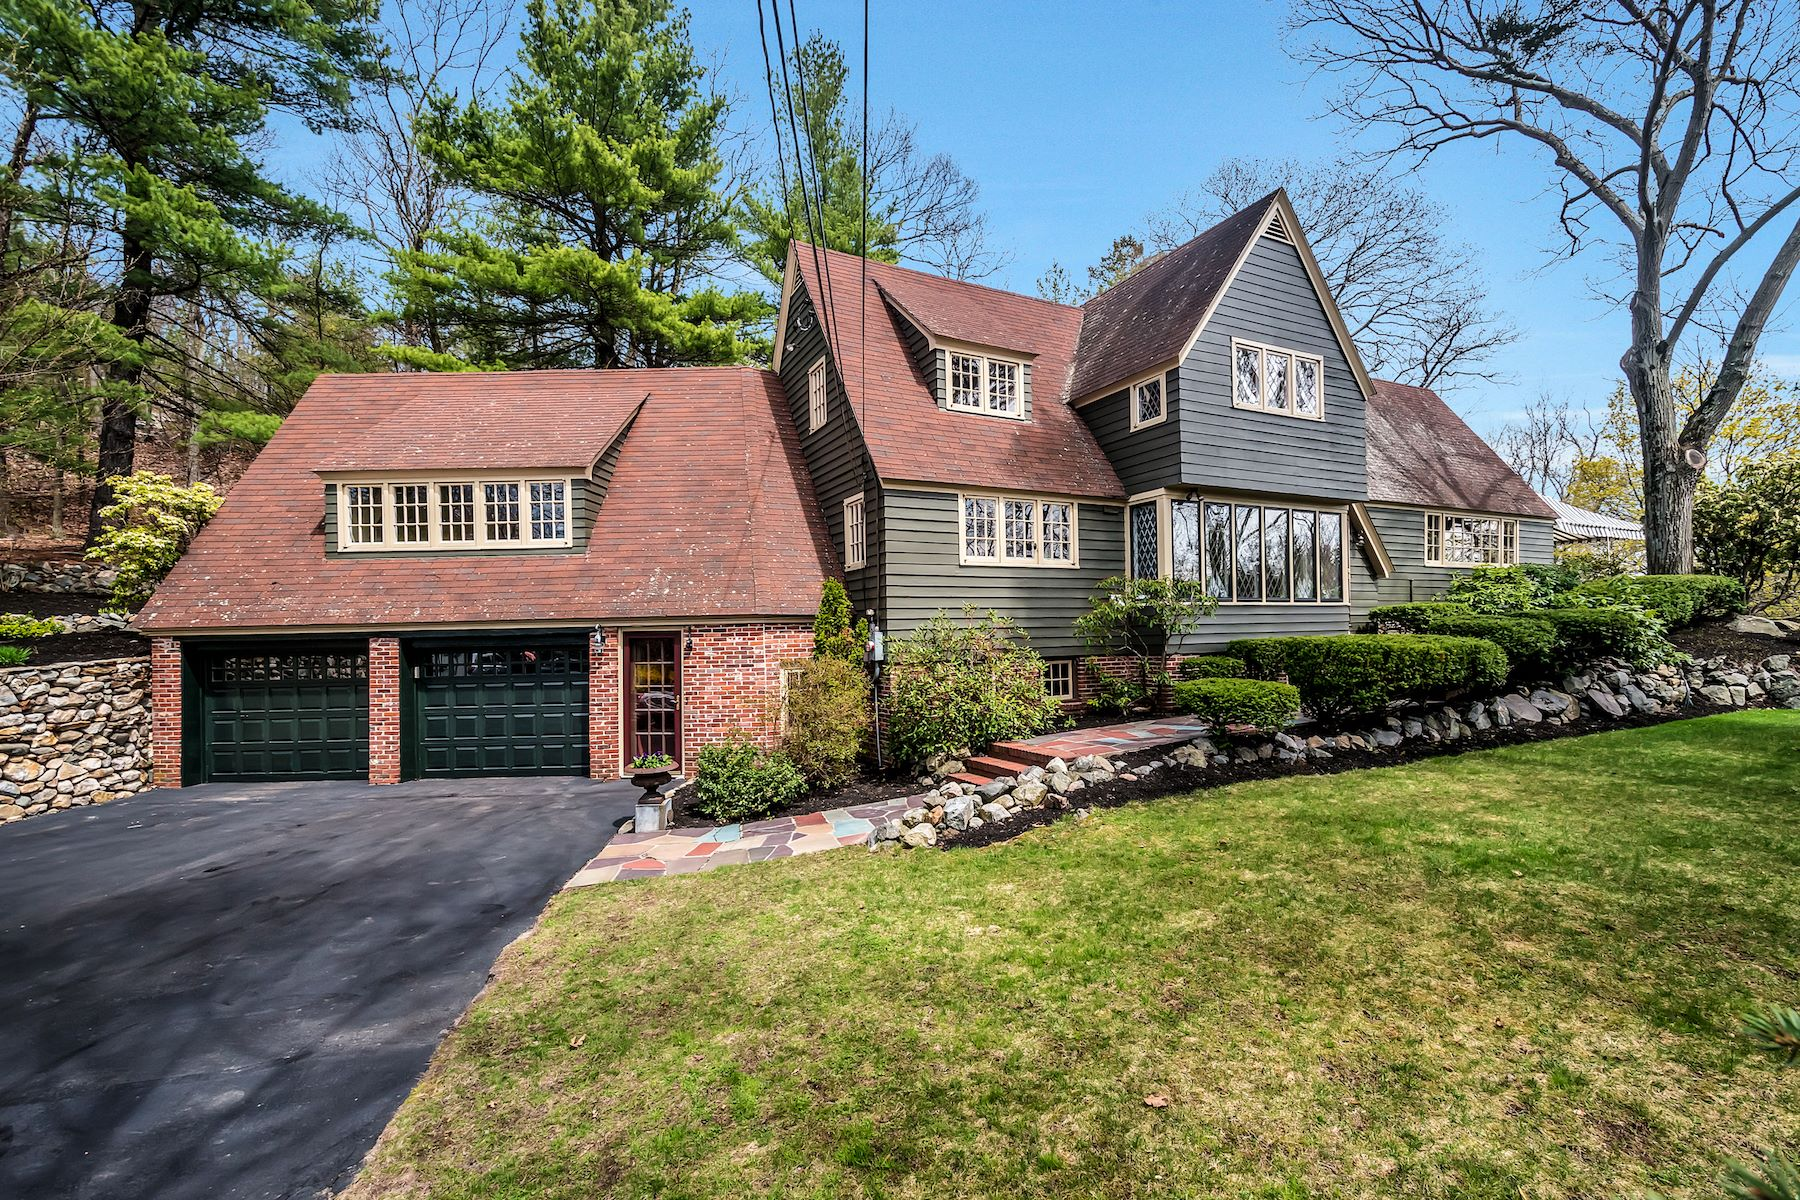 Single Family Home for Sale at Beautiful Colonial nestled on an acre+ of land 129 High Street Winchester, Massachusetts 01890 United States